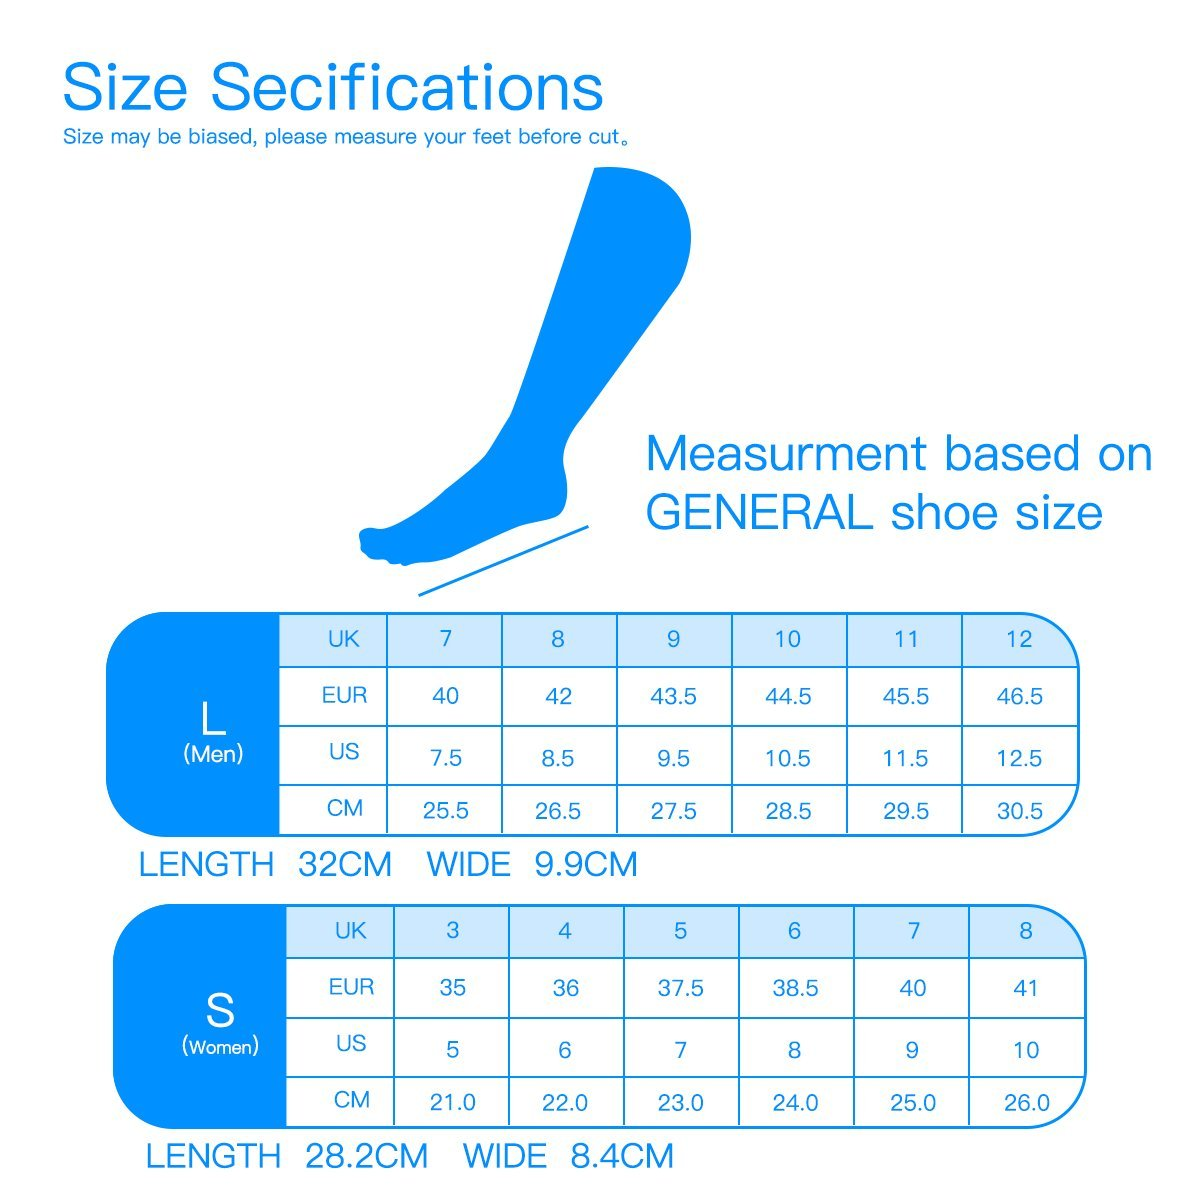 HLYOON Gel Sports Insoles for Foot Pain and Fasciitis Relieve, Full Length Comfort Inserts for Heel Protection, Shock Absorption, Shoe Inserts 1 Pair, Size 7.5-14 by HLYOON (Image #7)